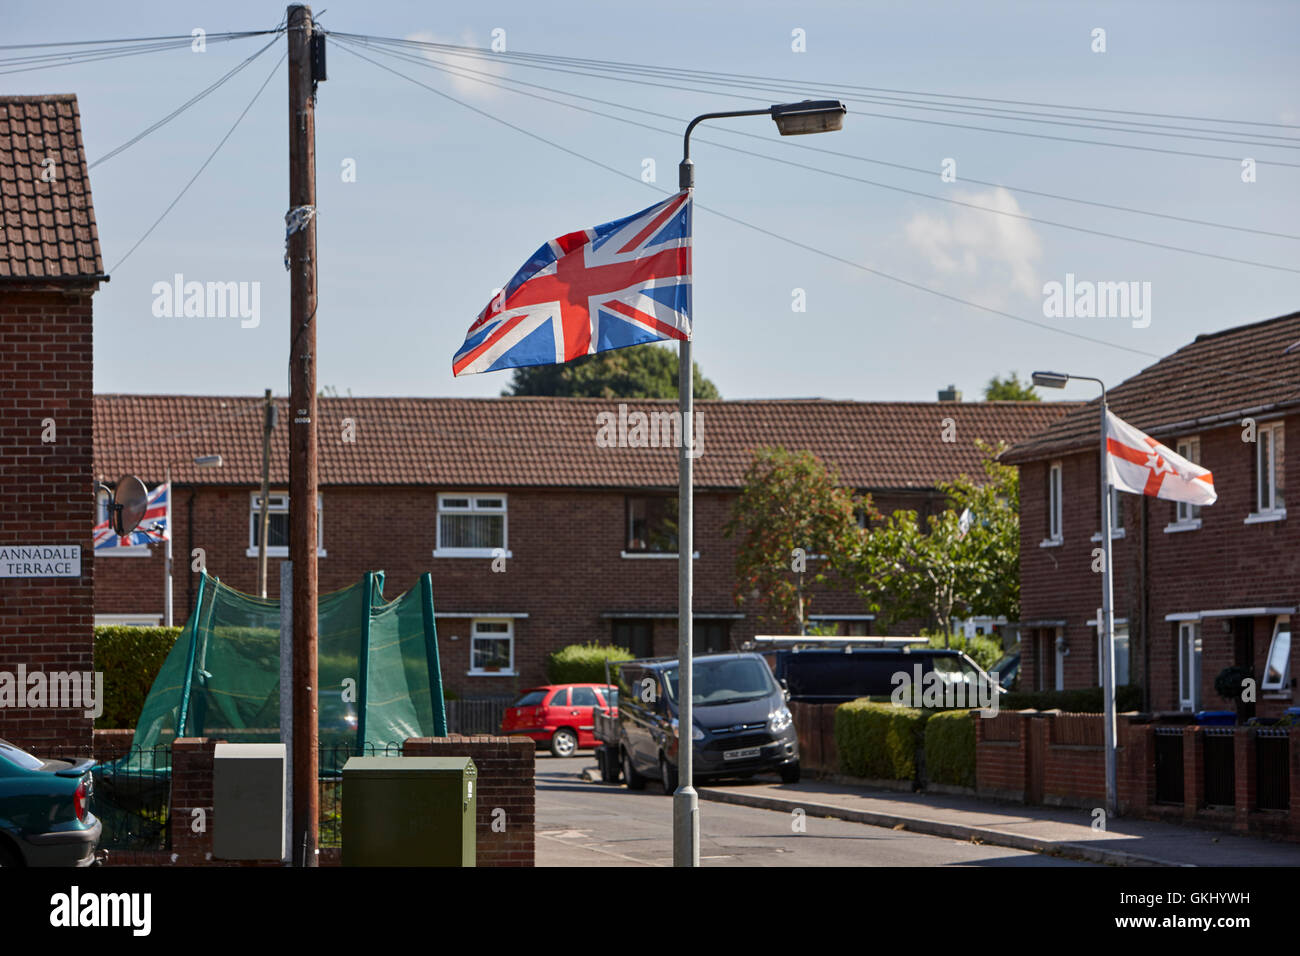 union and northern ireland flags hanging from lamposts in loyalist area of belfast - Stock Image